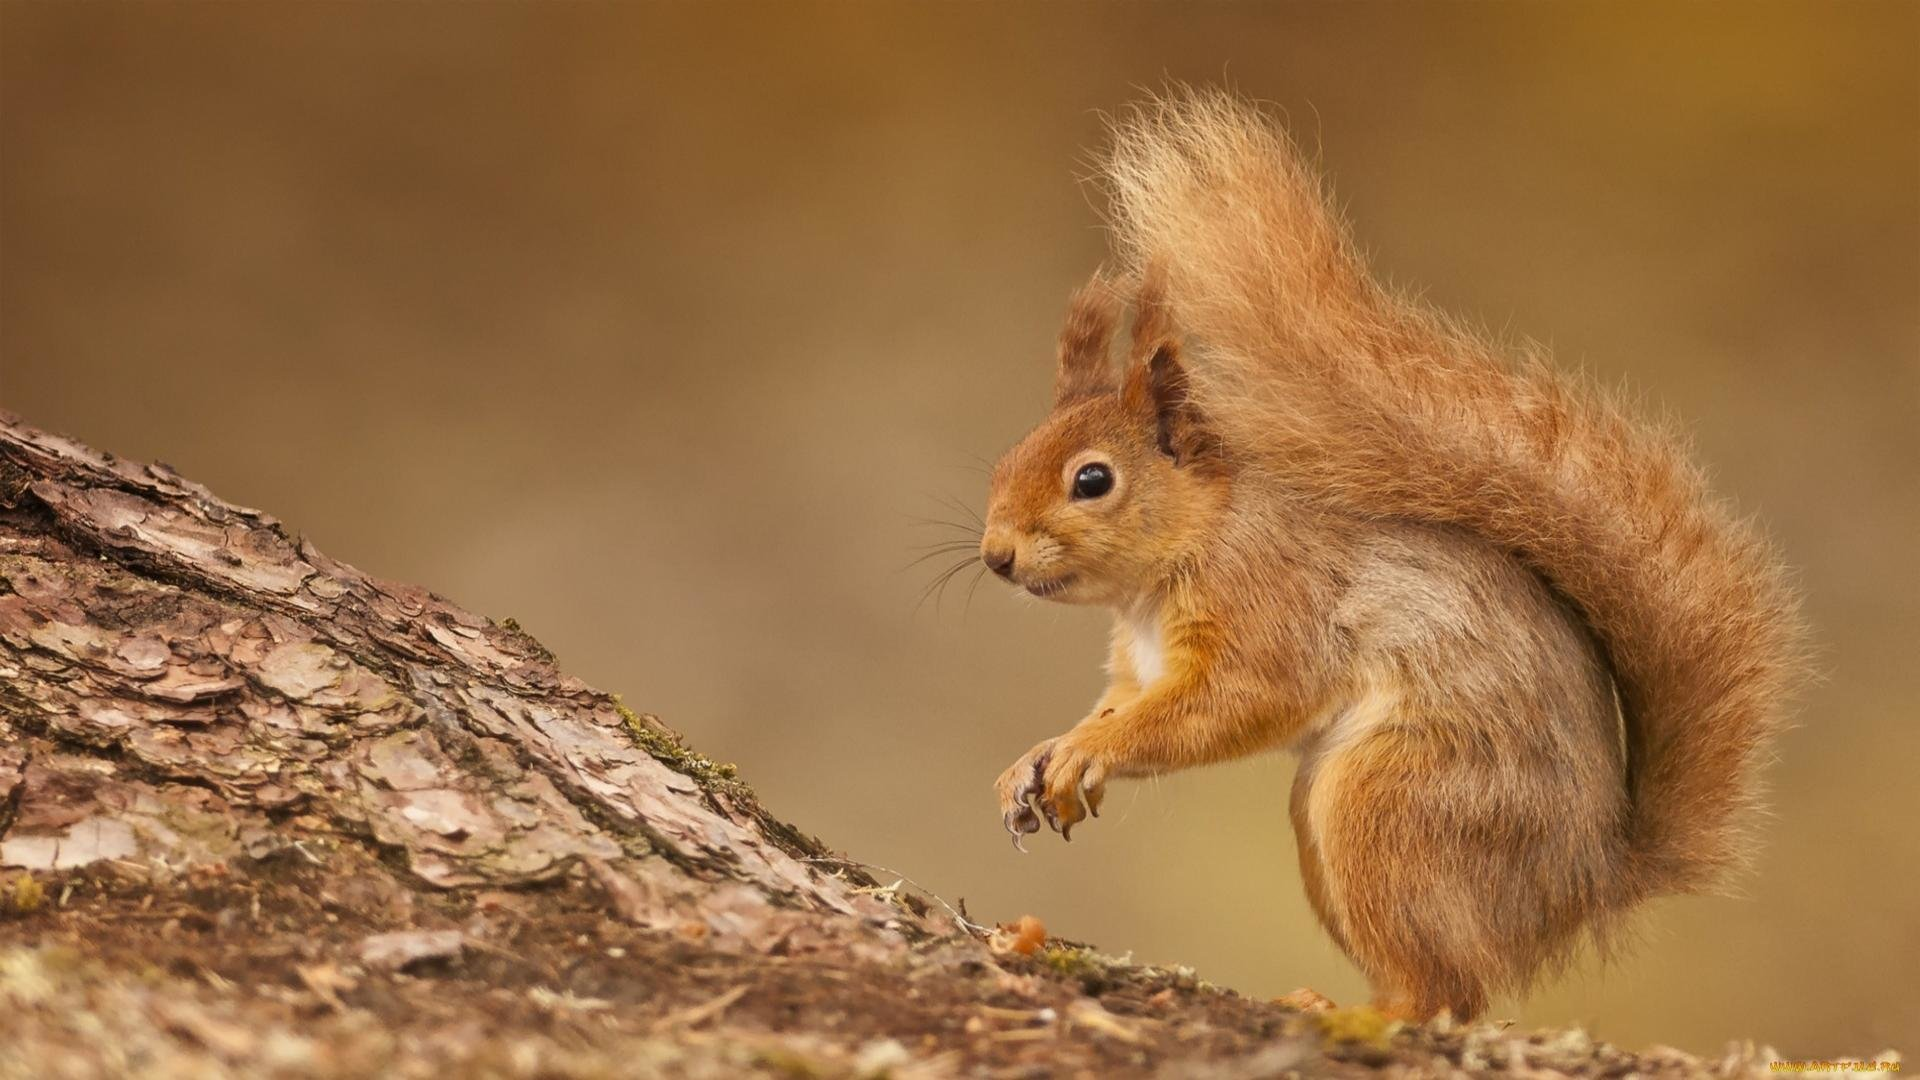 Download hd 1080p Squirrel PC background ID:311546 for free